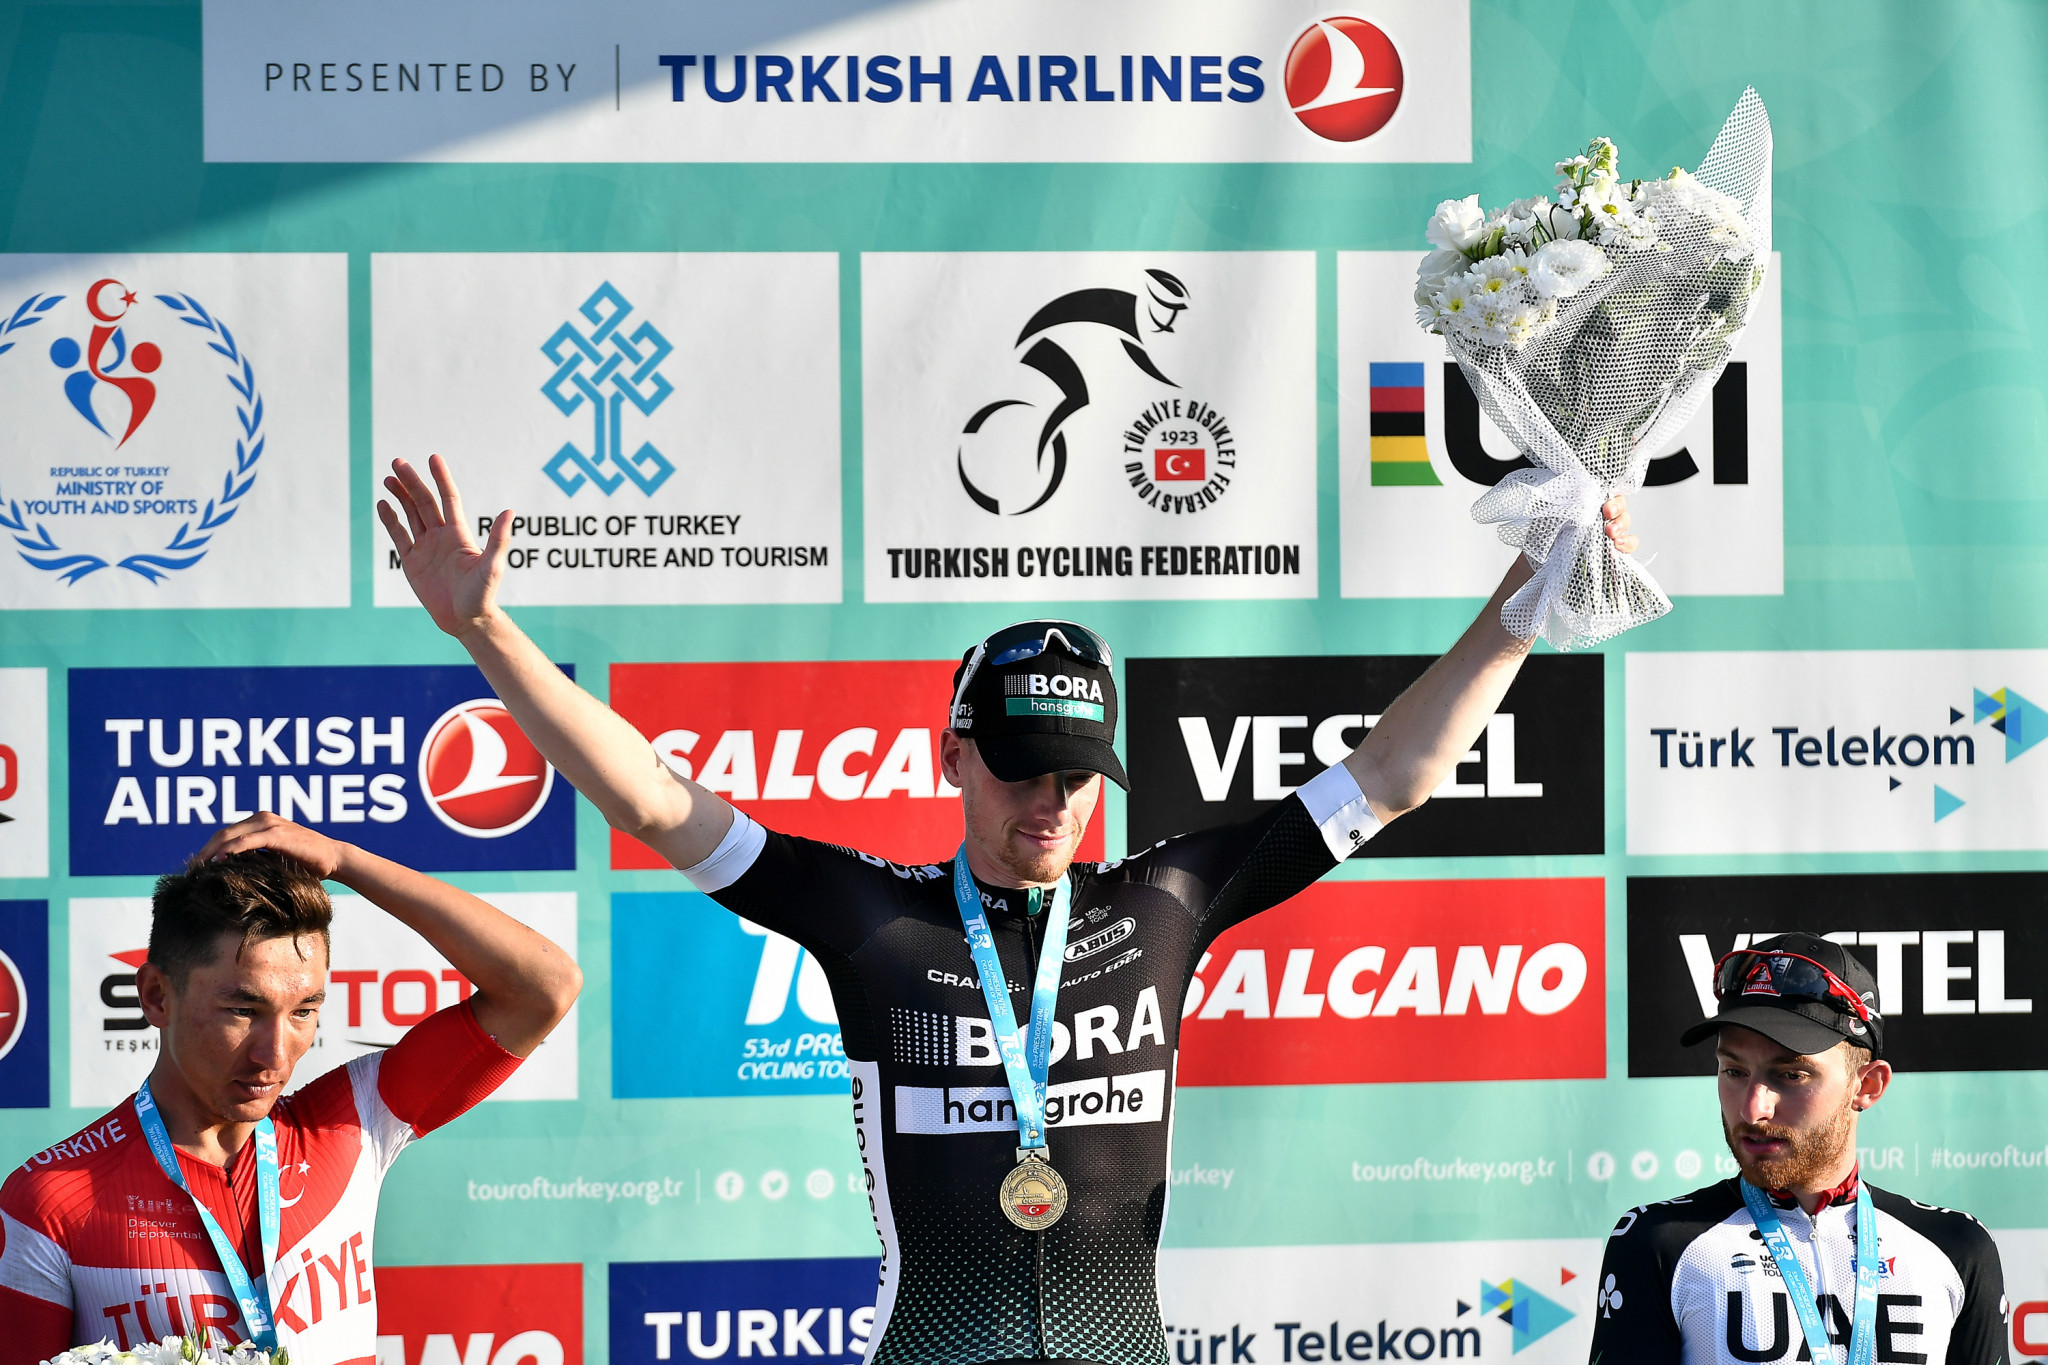 Bennett returns to top of podium at Tour of Turkey